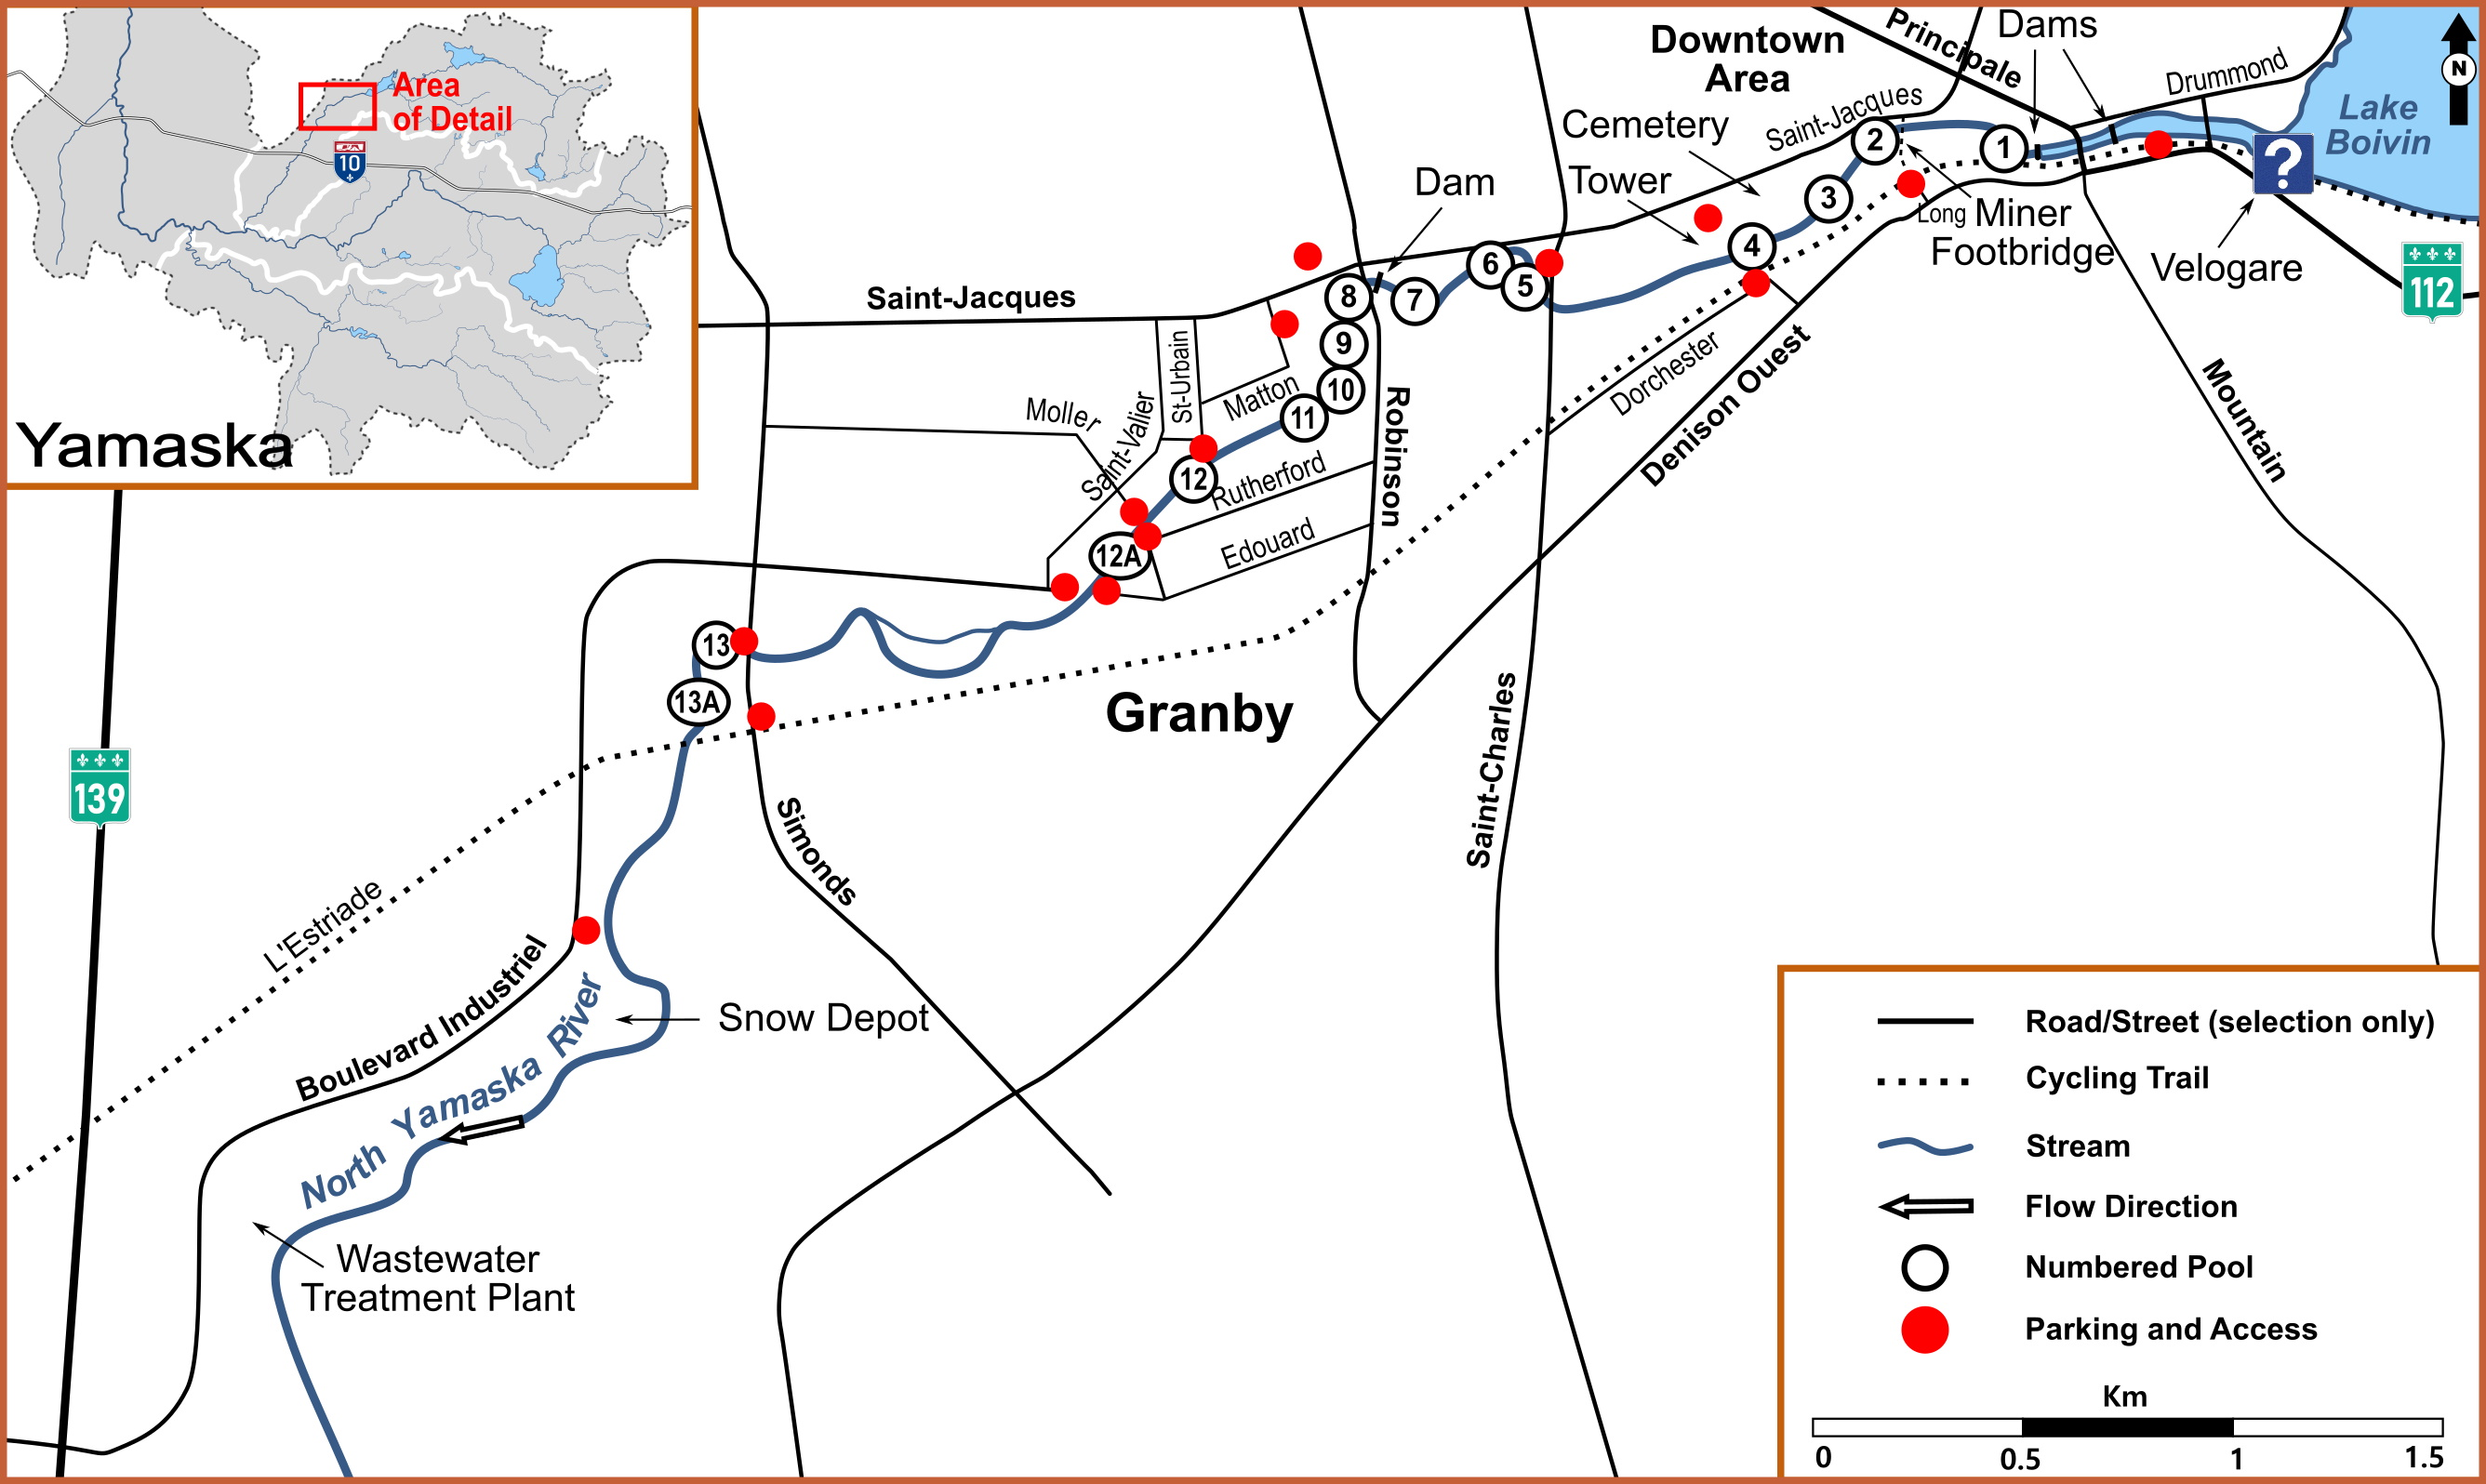 Example of a detailed map: the North Yamaska River in Granby. This section of river is a winter fishing destination.